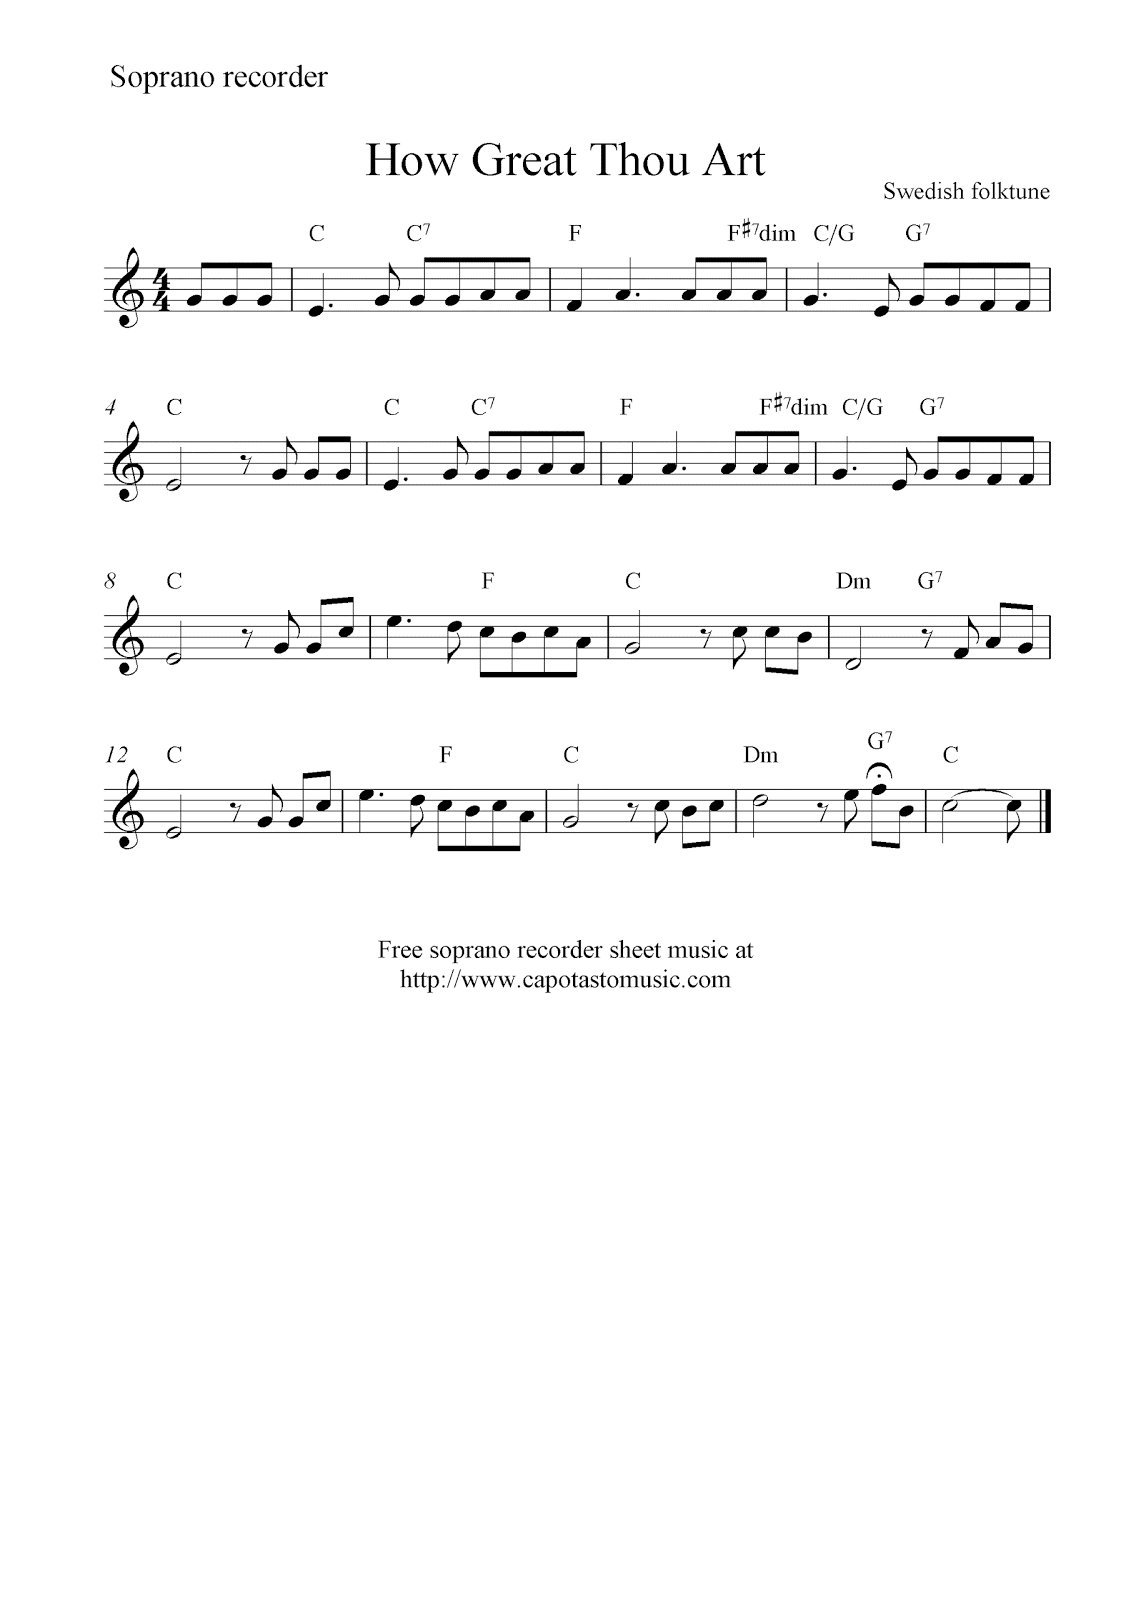 How Great Thou Art Free Soprano Recorder Sheet Music Notes